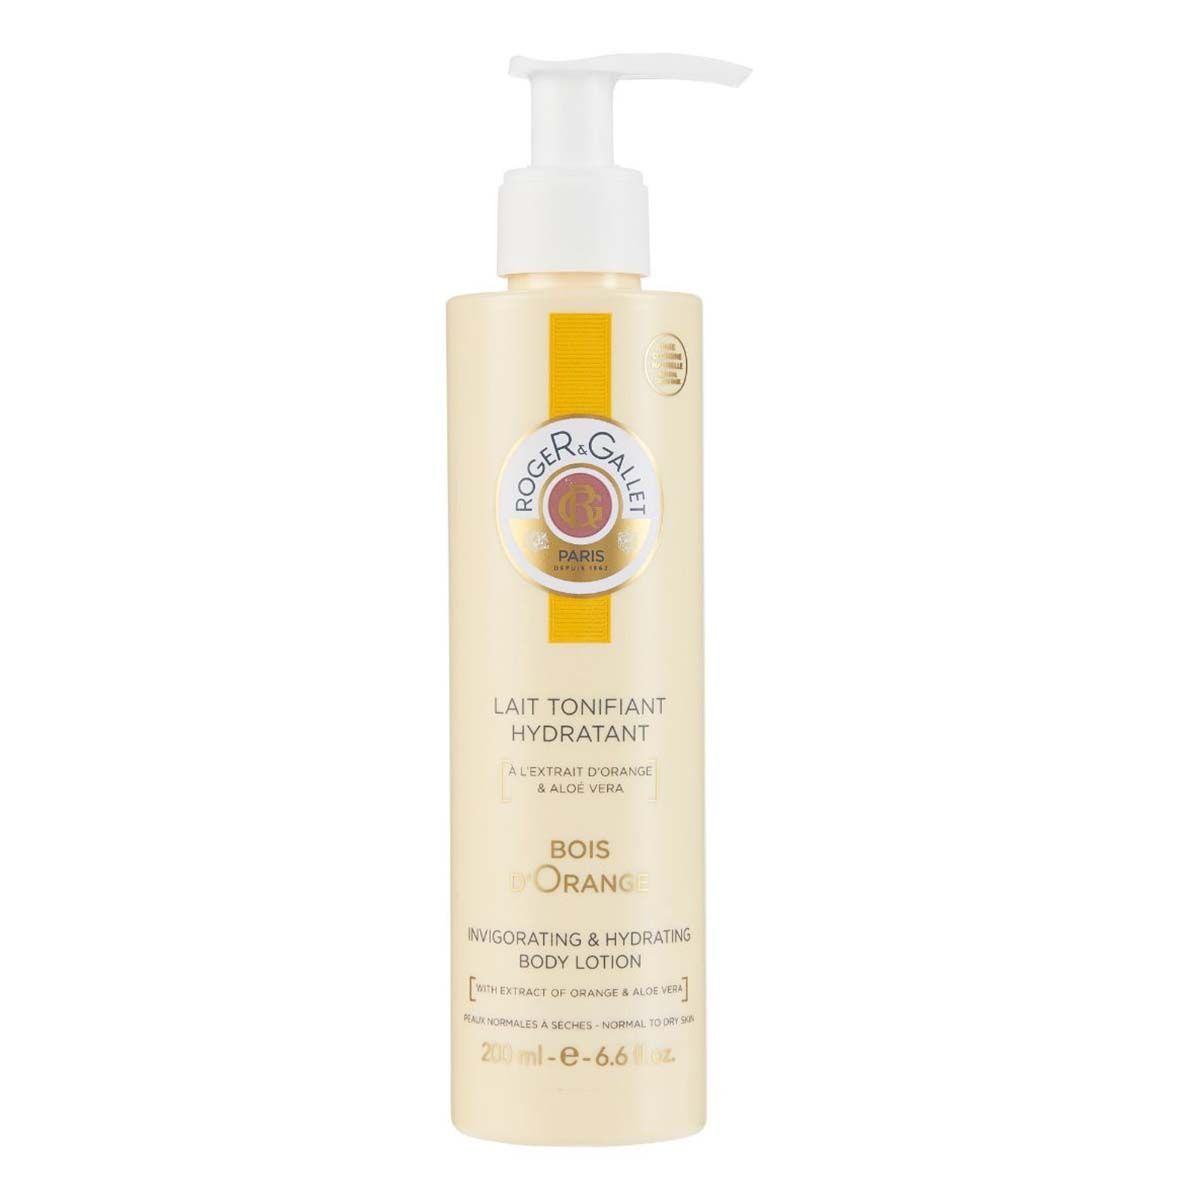 Lait Corps Tonifiant Hydratant Bois d'Orange Roger Gallet - 200ml